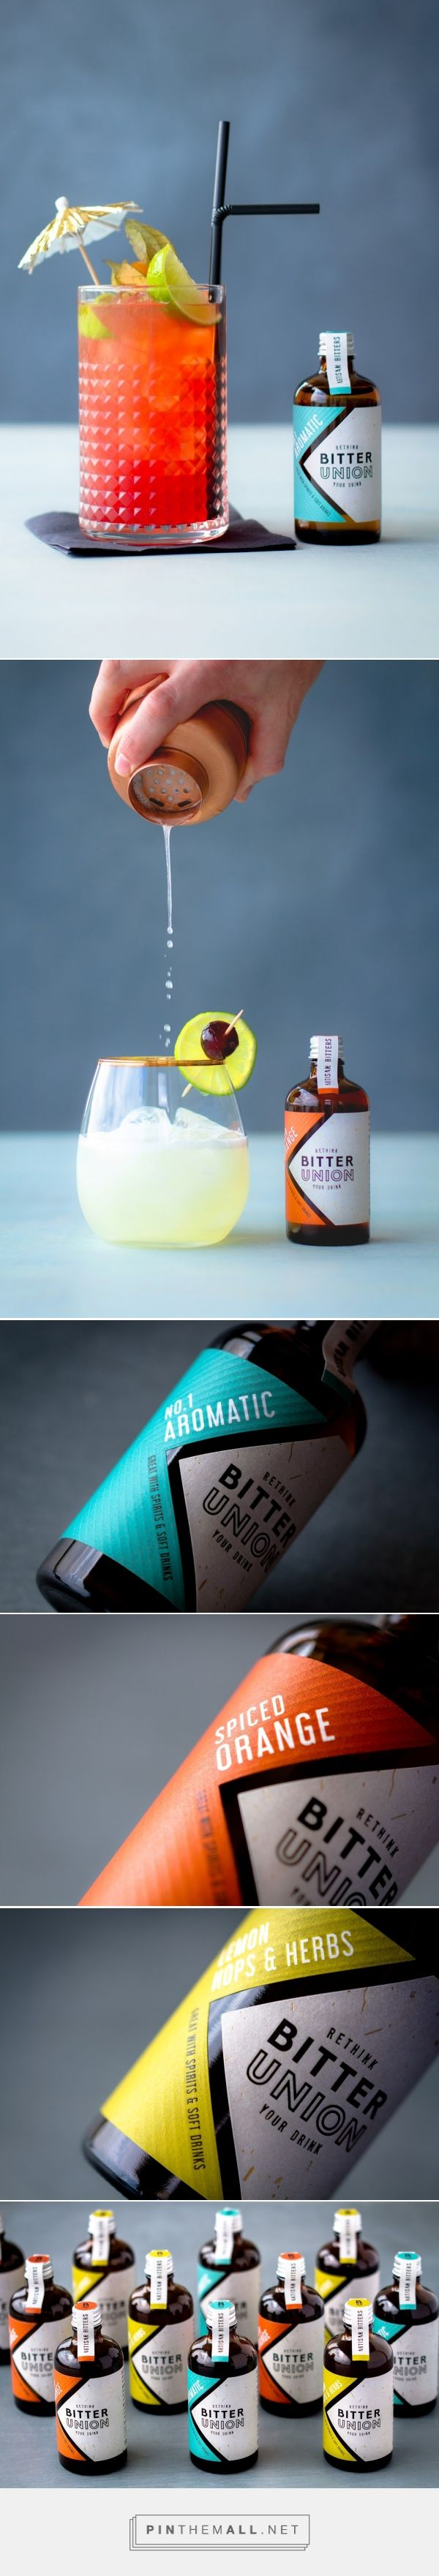 838 best Food Matters images on Pinterest | Kitchens, Drink and Drinks